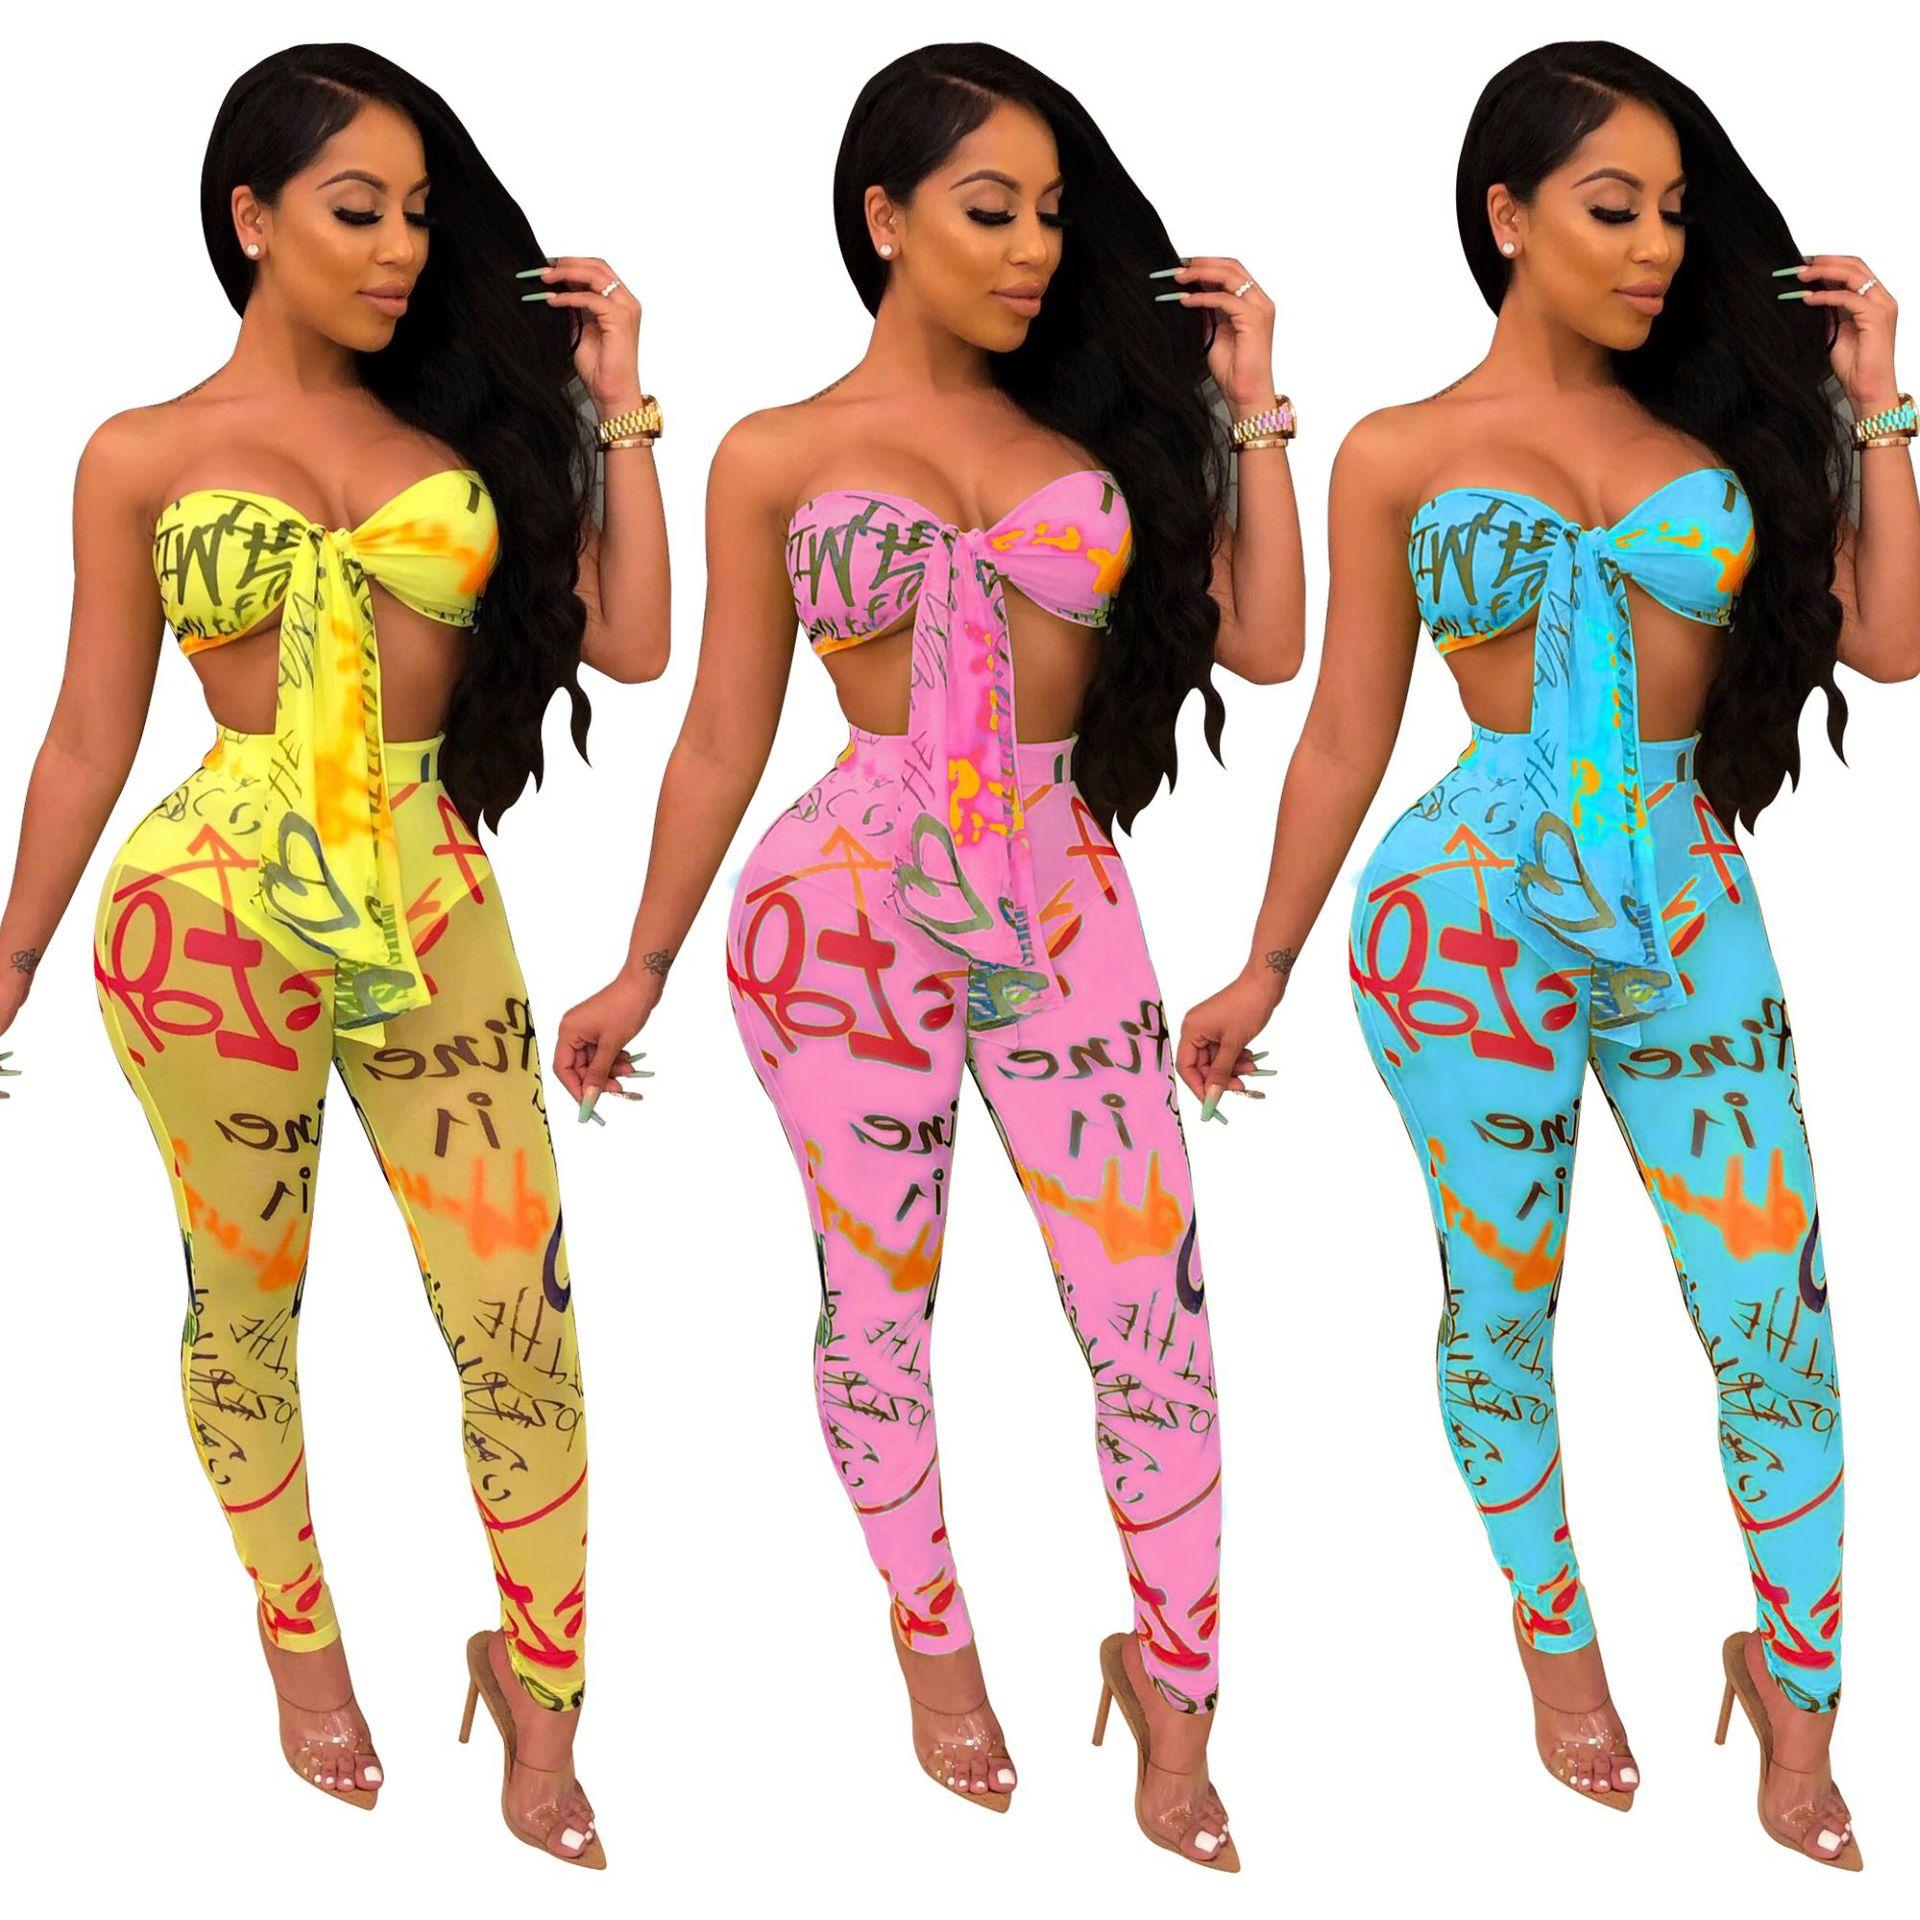 Letter Print Women Tracksuits Sexy Two Piece Set Front Tie Strapless Crop Top + Sheer Mesh Pencil Pants Club Outfits 3 Color